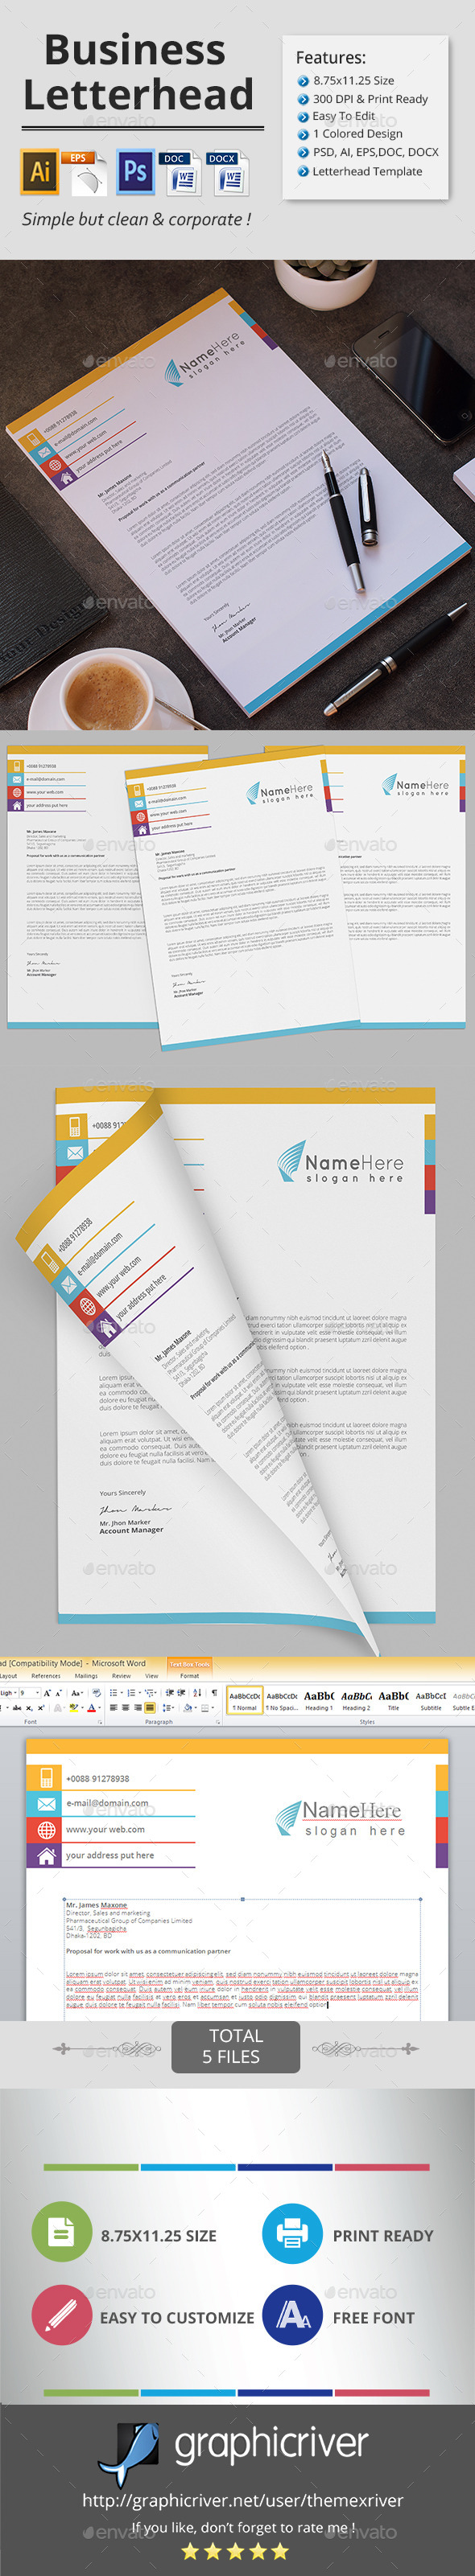 GraphicRiver Business Letterhead 11894295